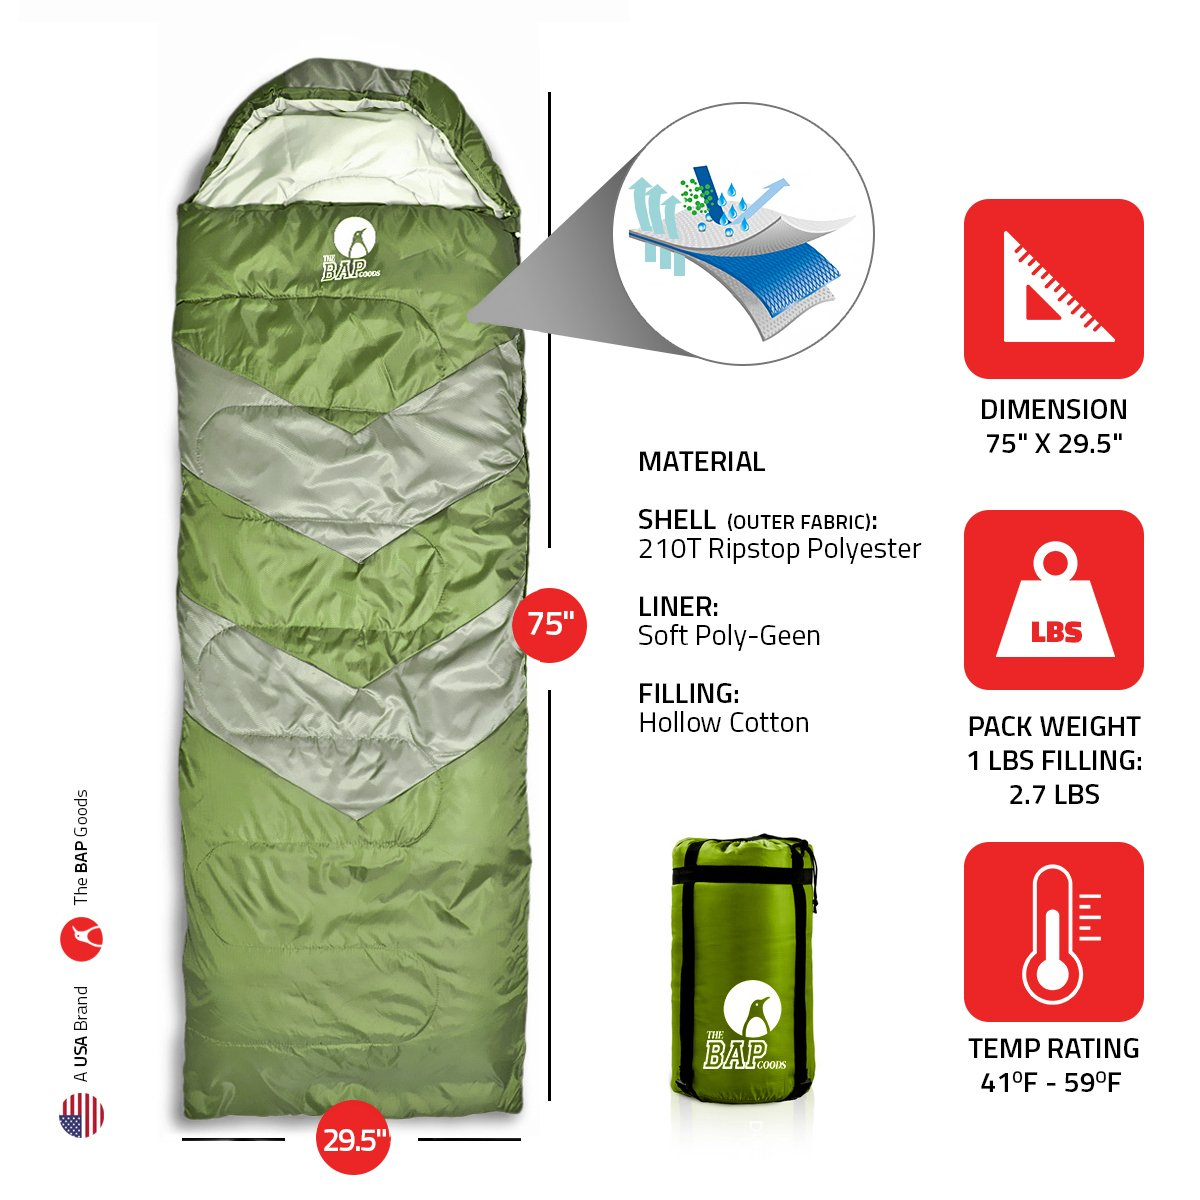 Sleeping Bag Outdoor Camping Extra Wide – Bonus Pillow – for Men Women Adults 210T Ripstop Compact Envelope Sleeping Bag – Ideal for All Year Long Available in Two Colors and Different Thickness